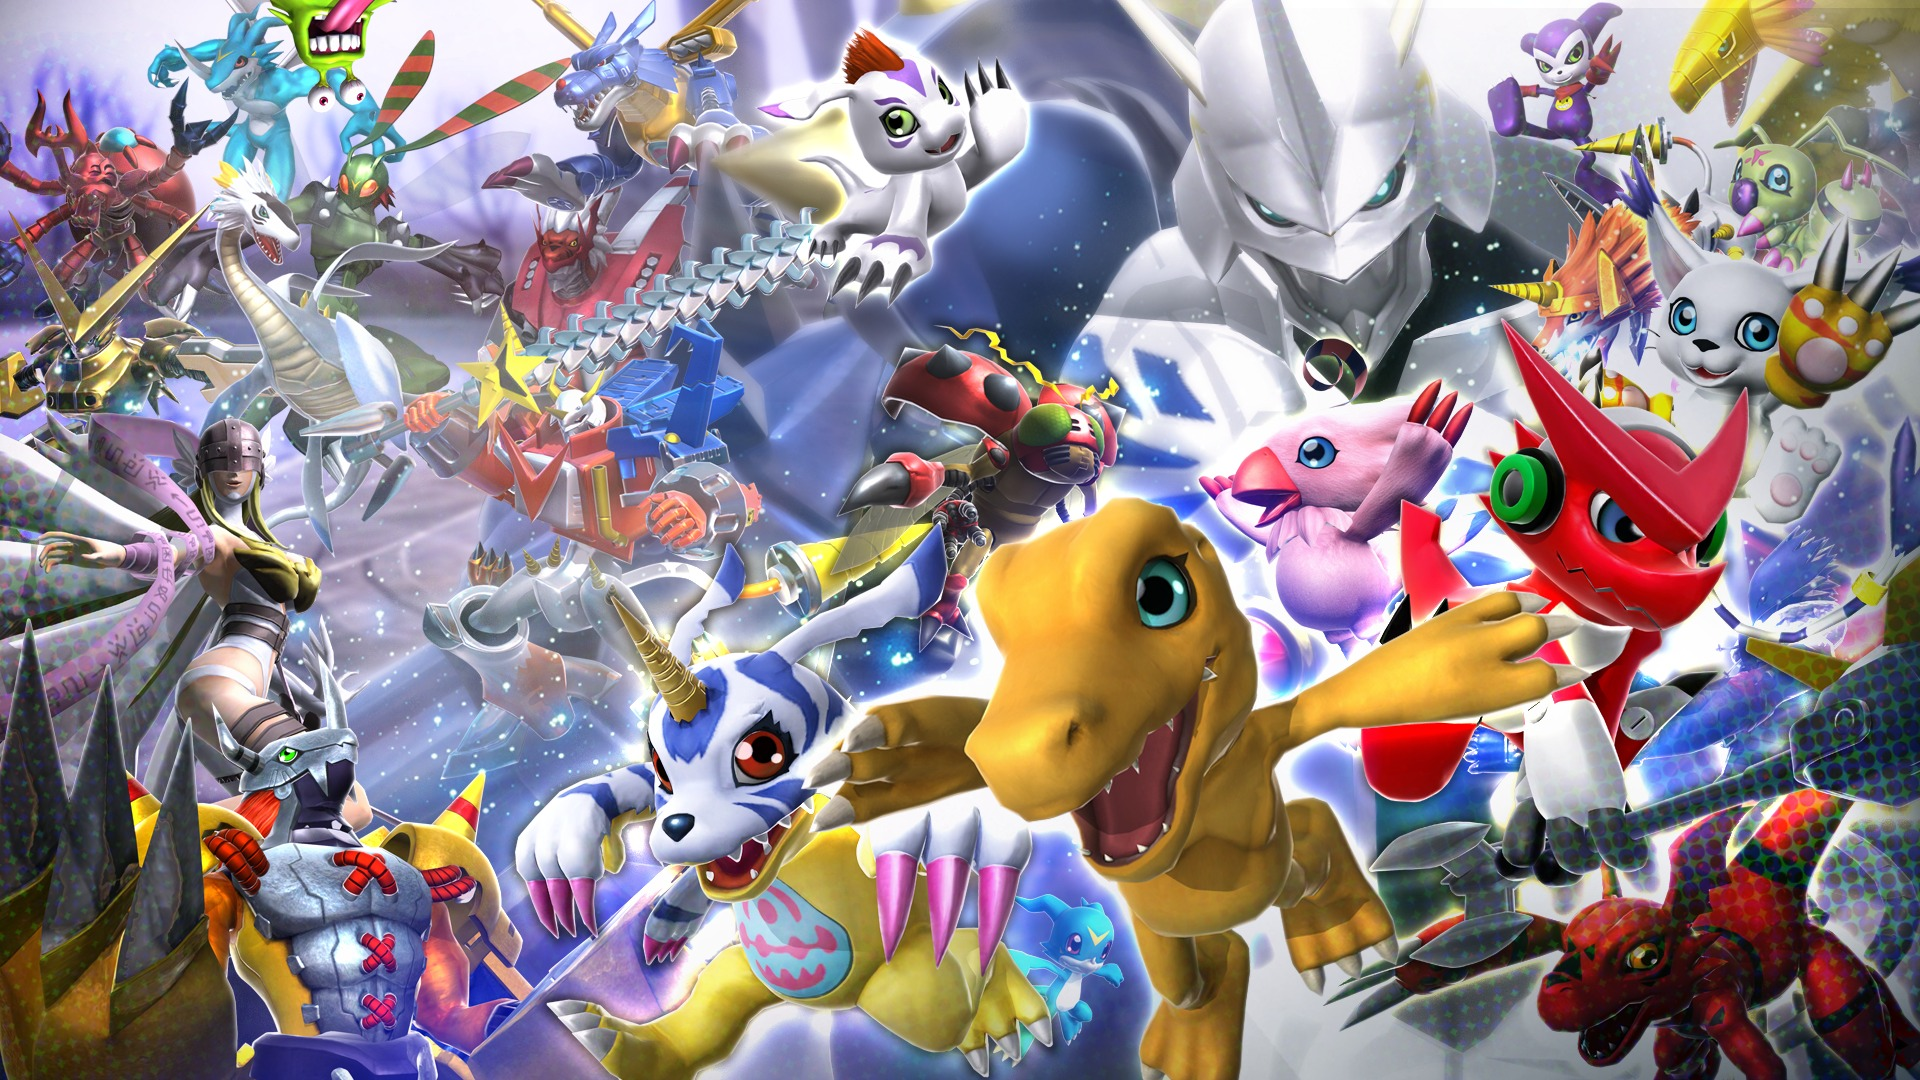 Pictures Of Digimon Story Cyber Sleuth 11 12